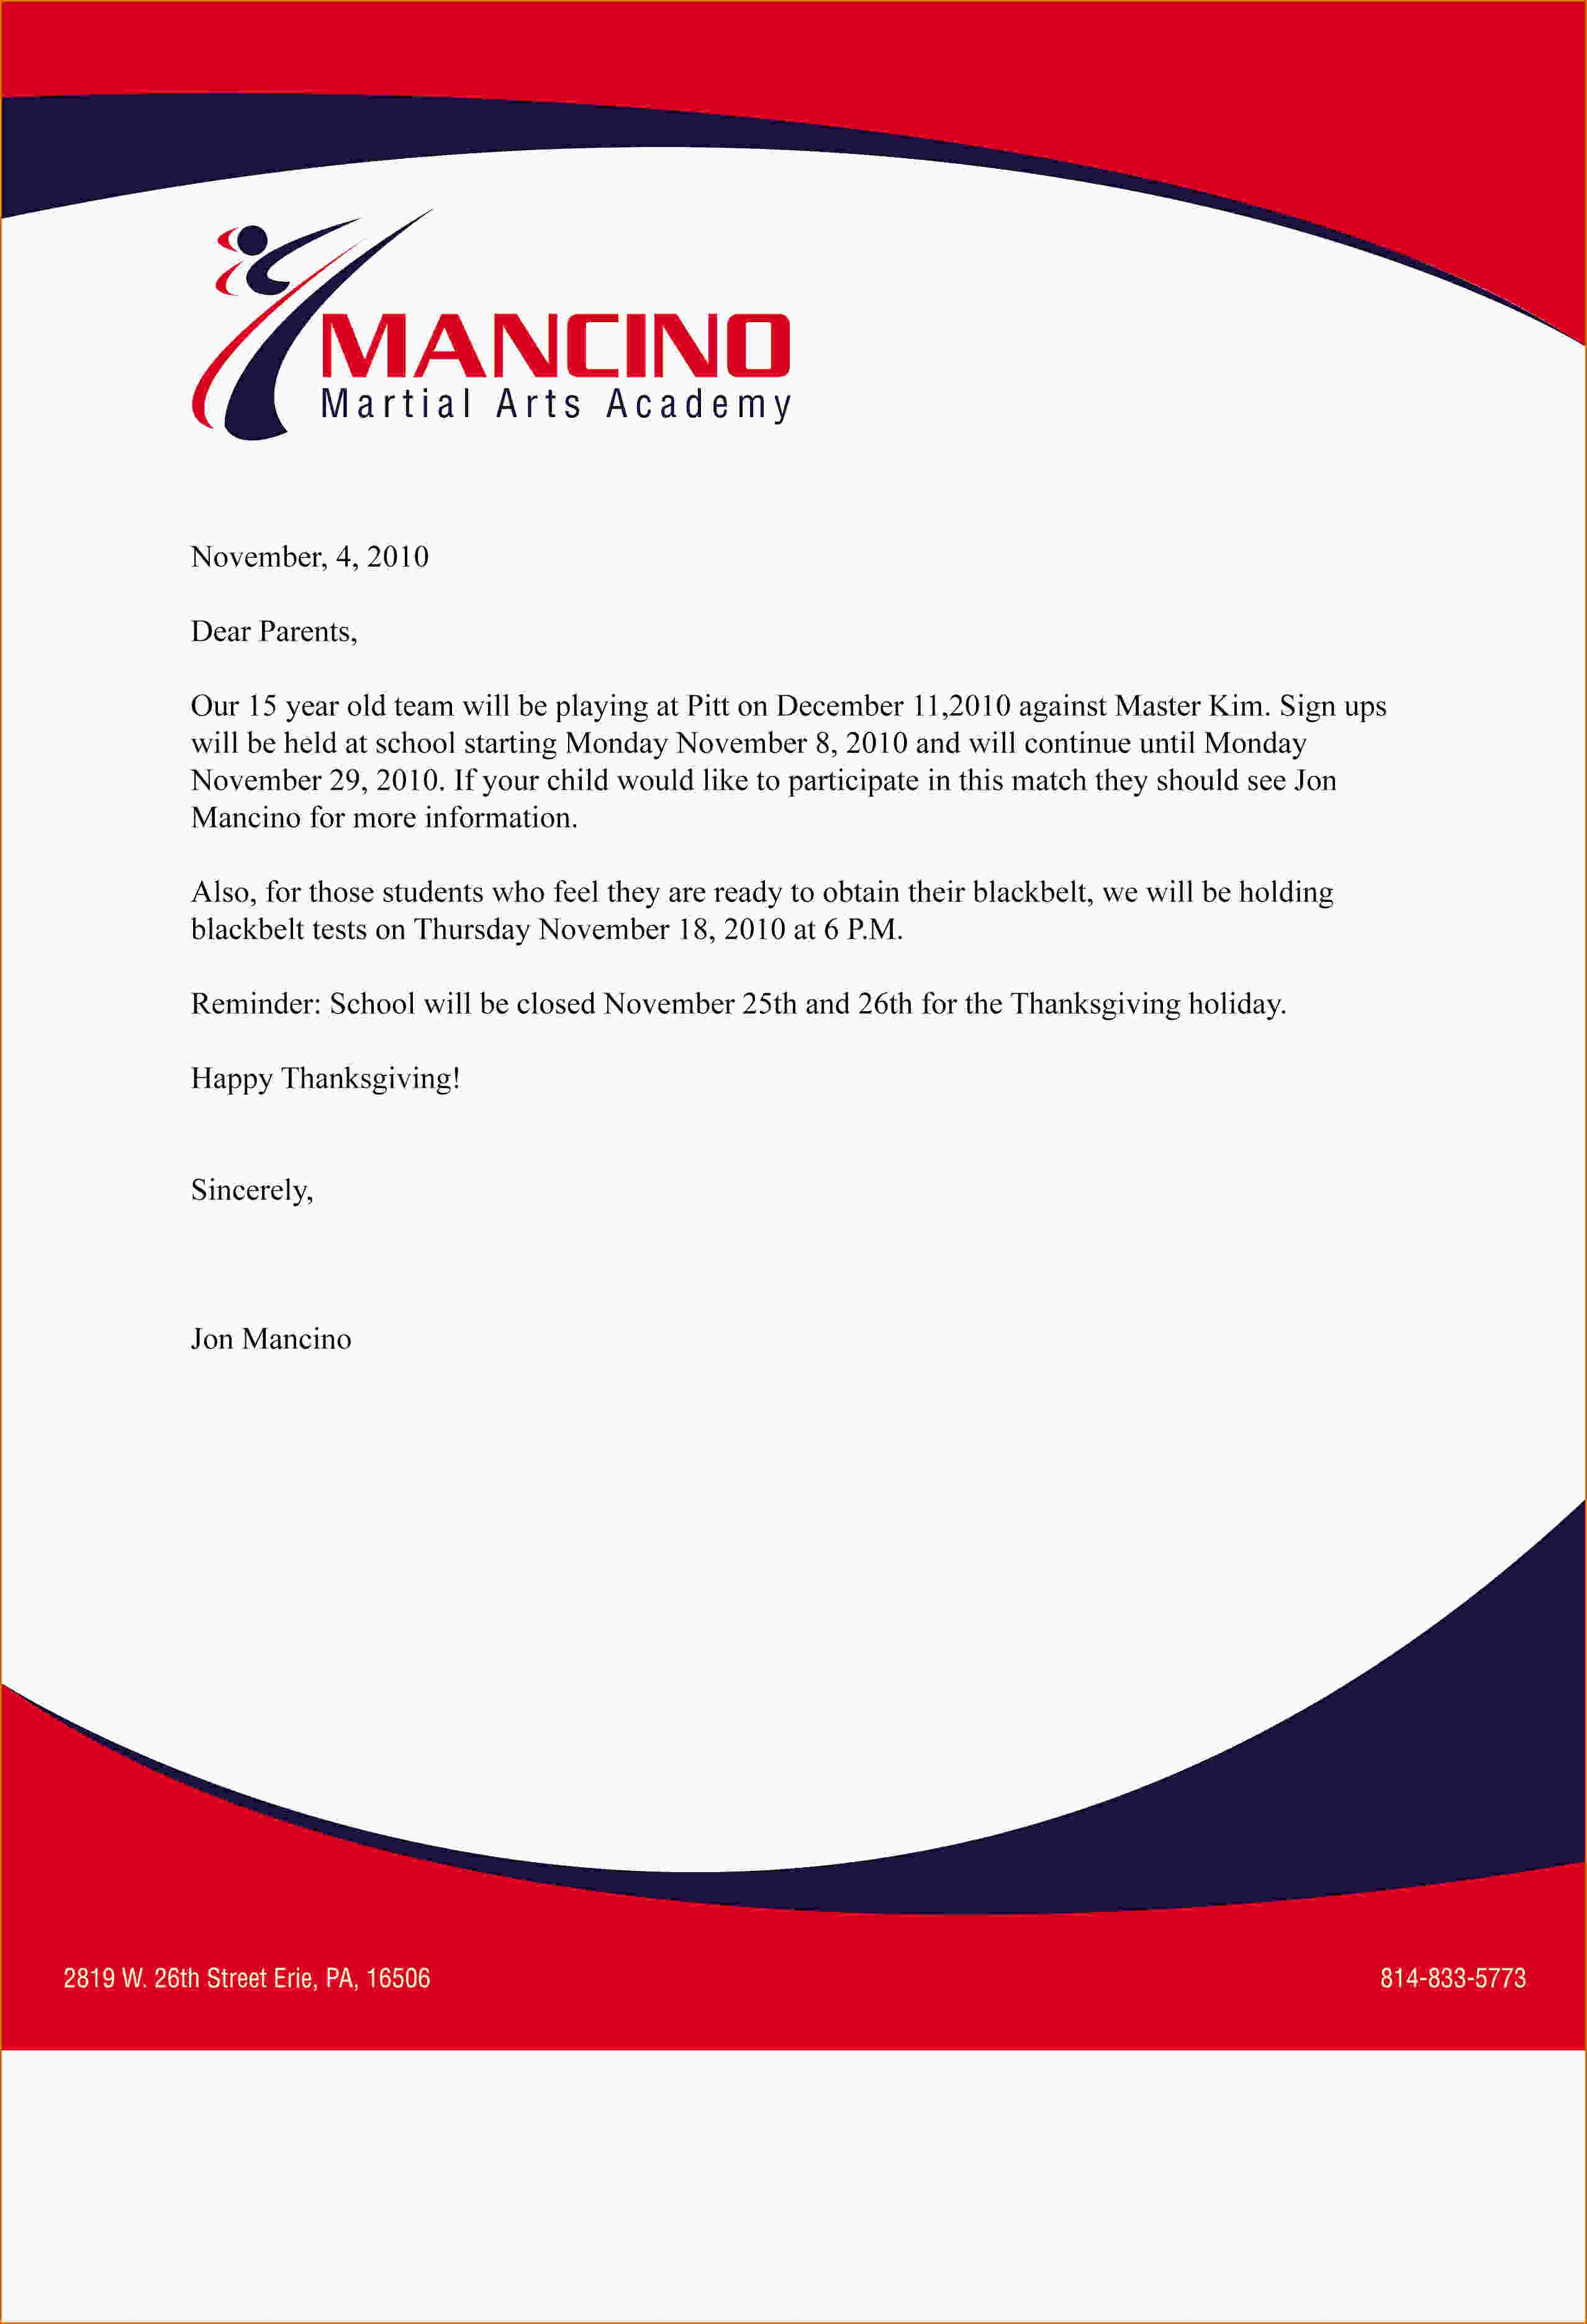 Business letter format letterhead sample letter writing format usa fresh letter sample business spiritdancerdesigns Images